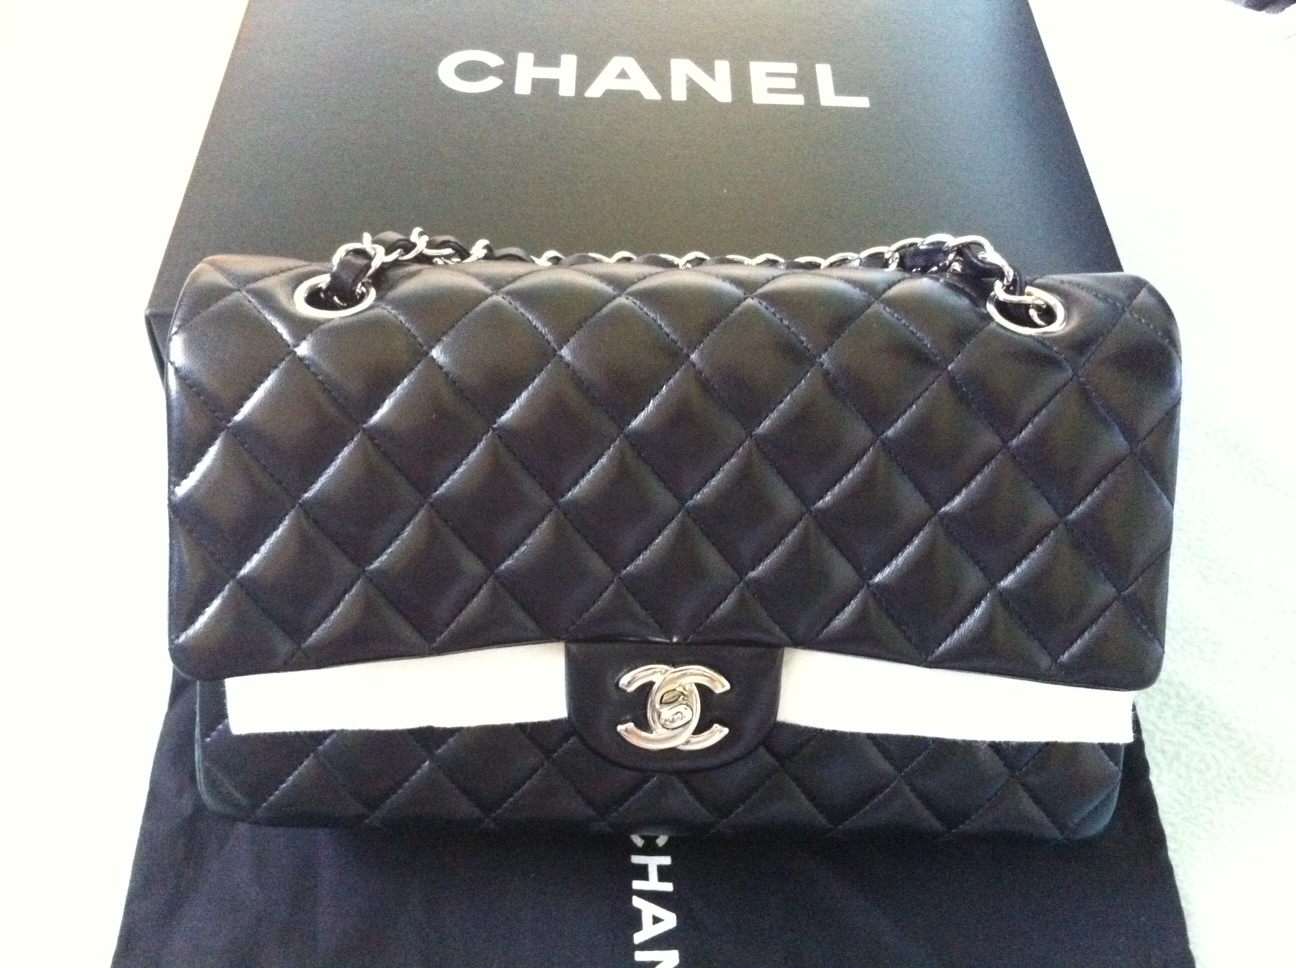 d07565a447 ... baby Chanel in lambskin, then it is recommended for you to get this  type of leather. Anyway, there would always still be a room for a new one  right? :p